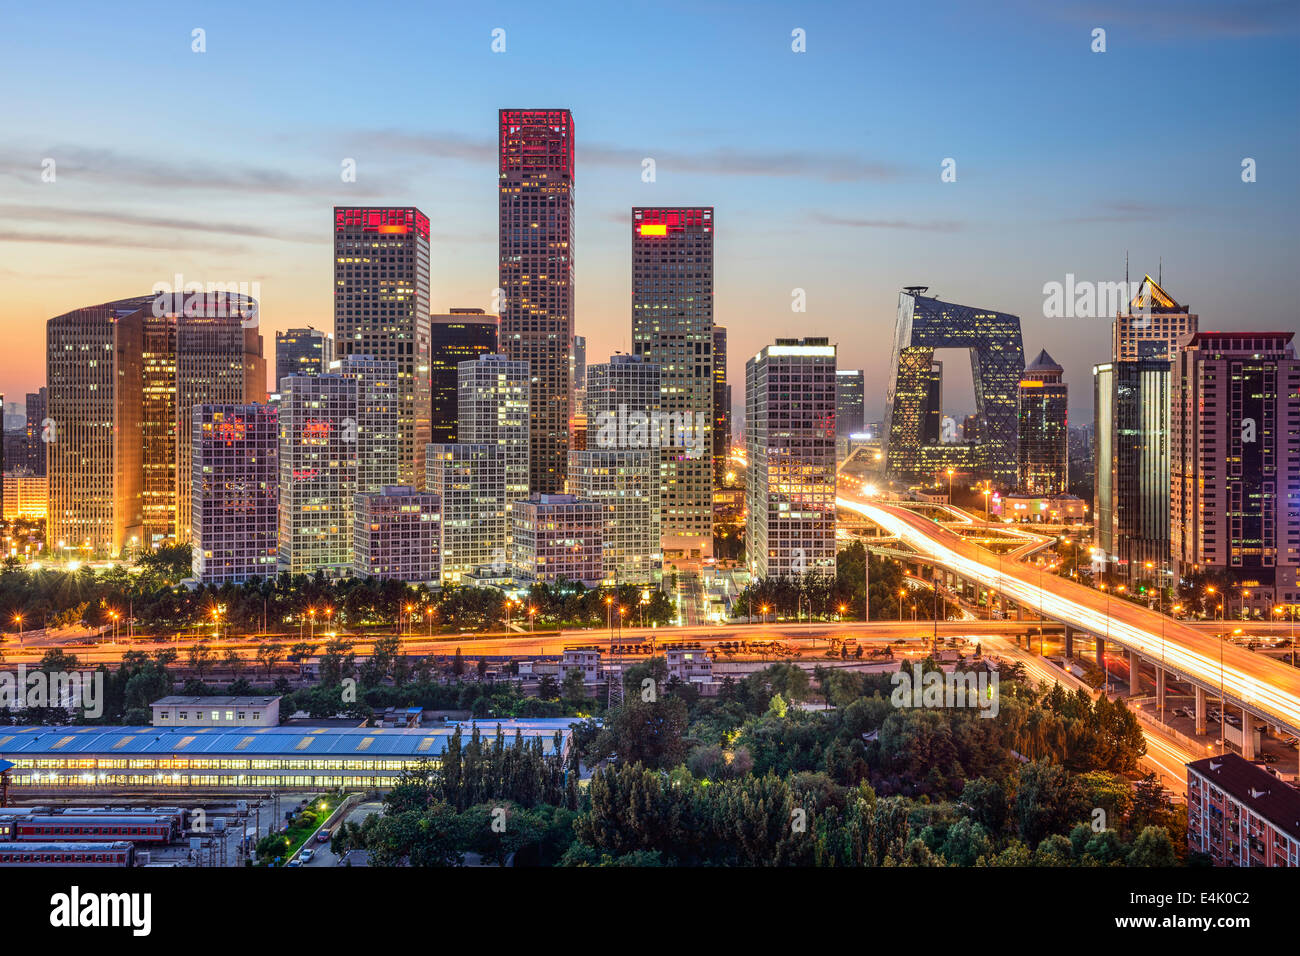 Peking, China-Skyline im central Business District. Stockbild